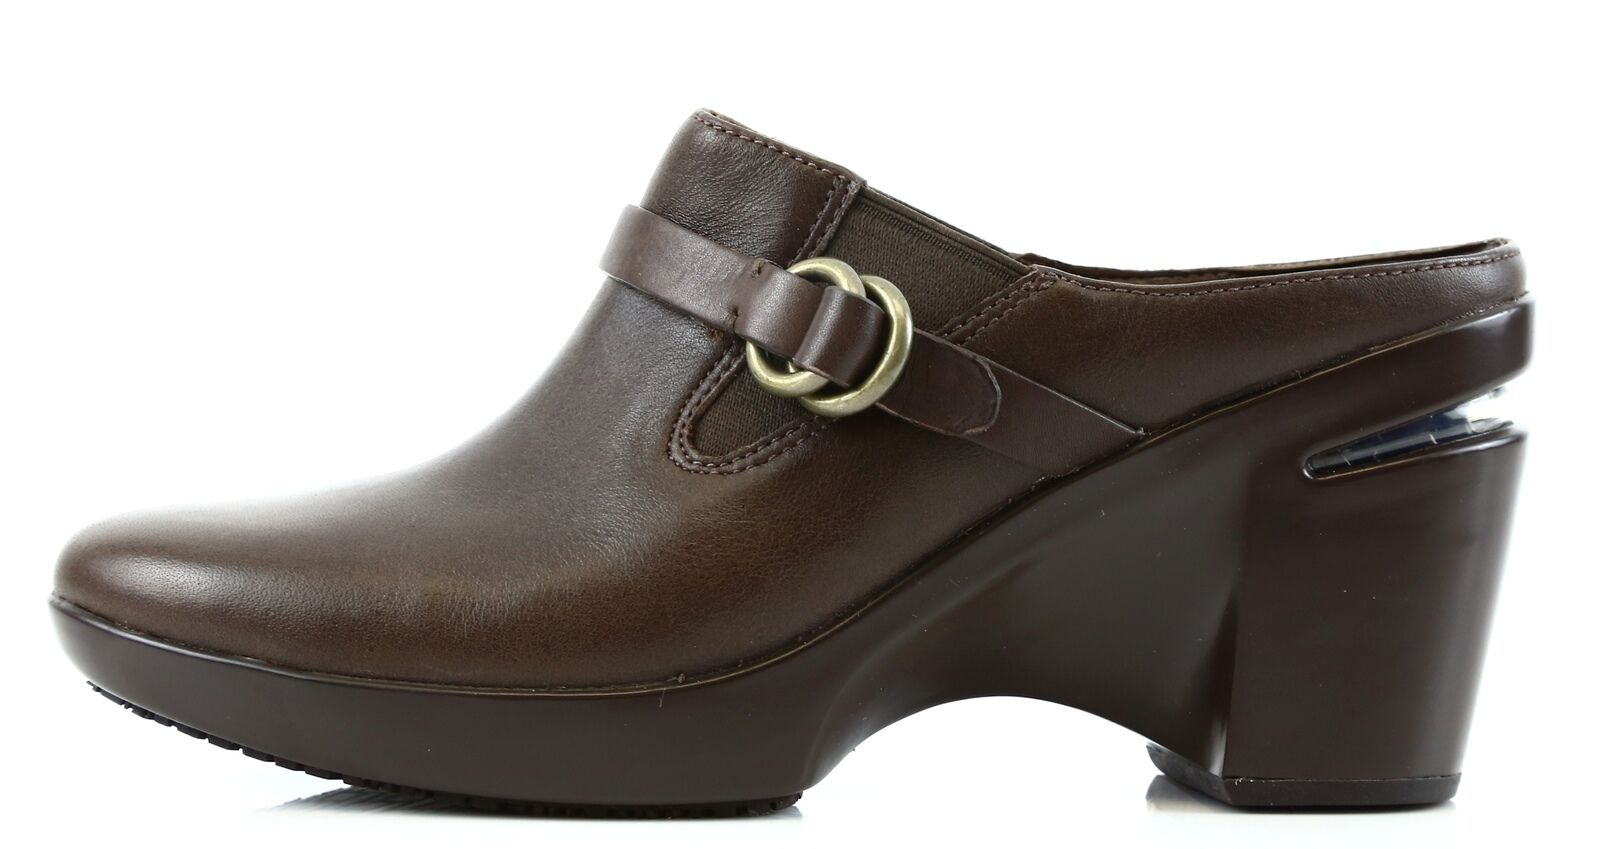 Cole Haan Shelly femmes marron Leather Clog Sz 6 6 6 8188 479098